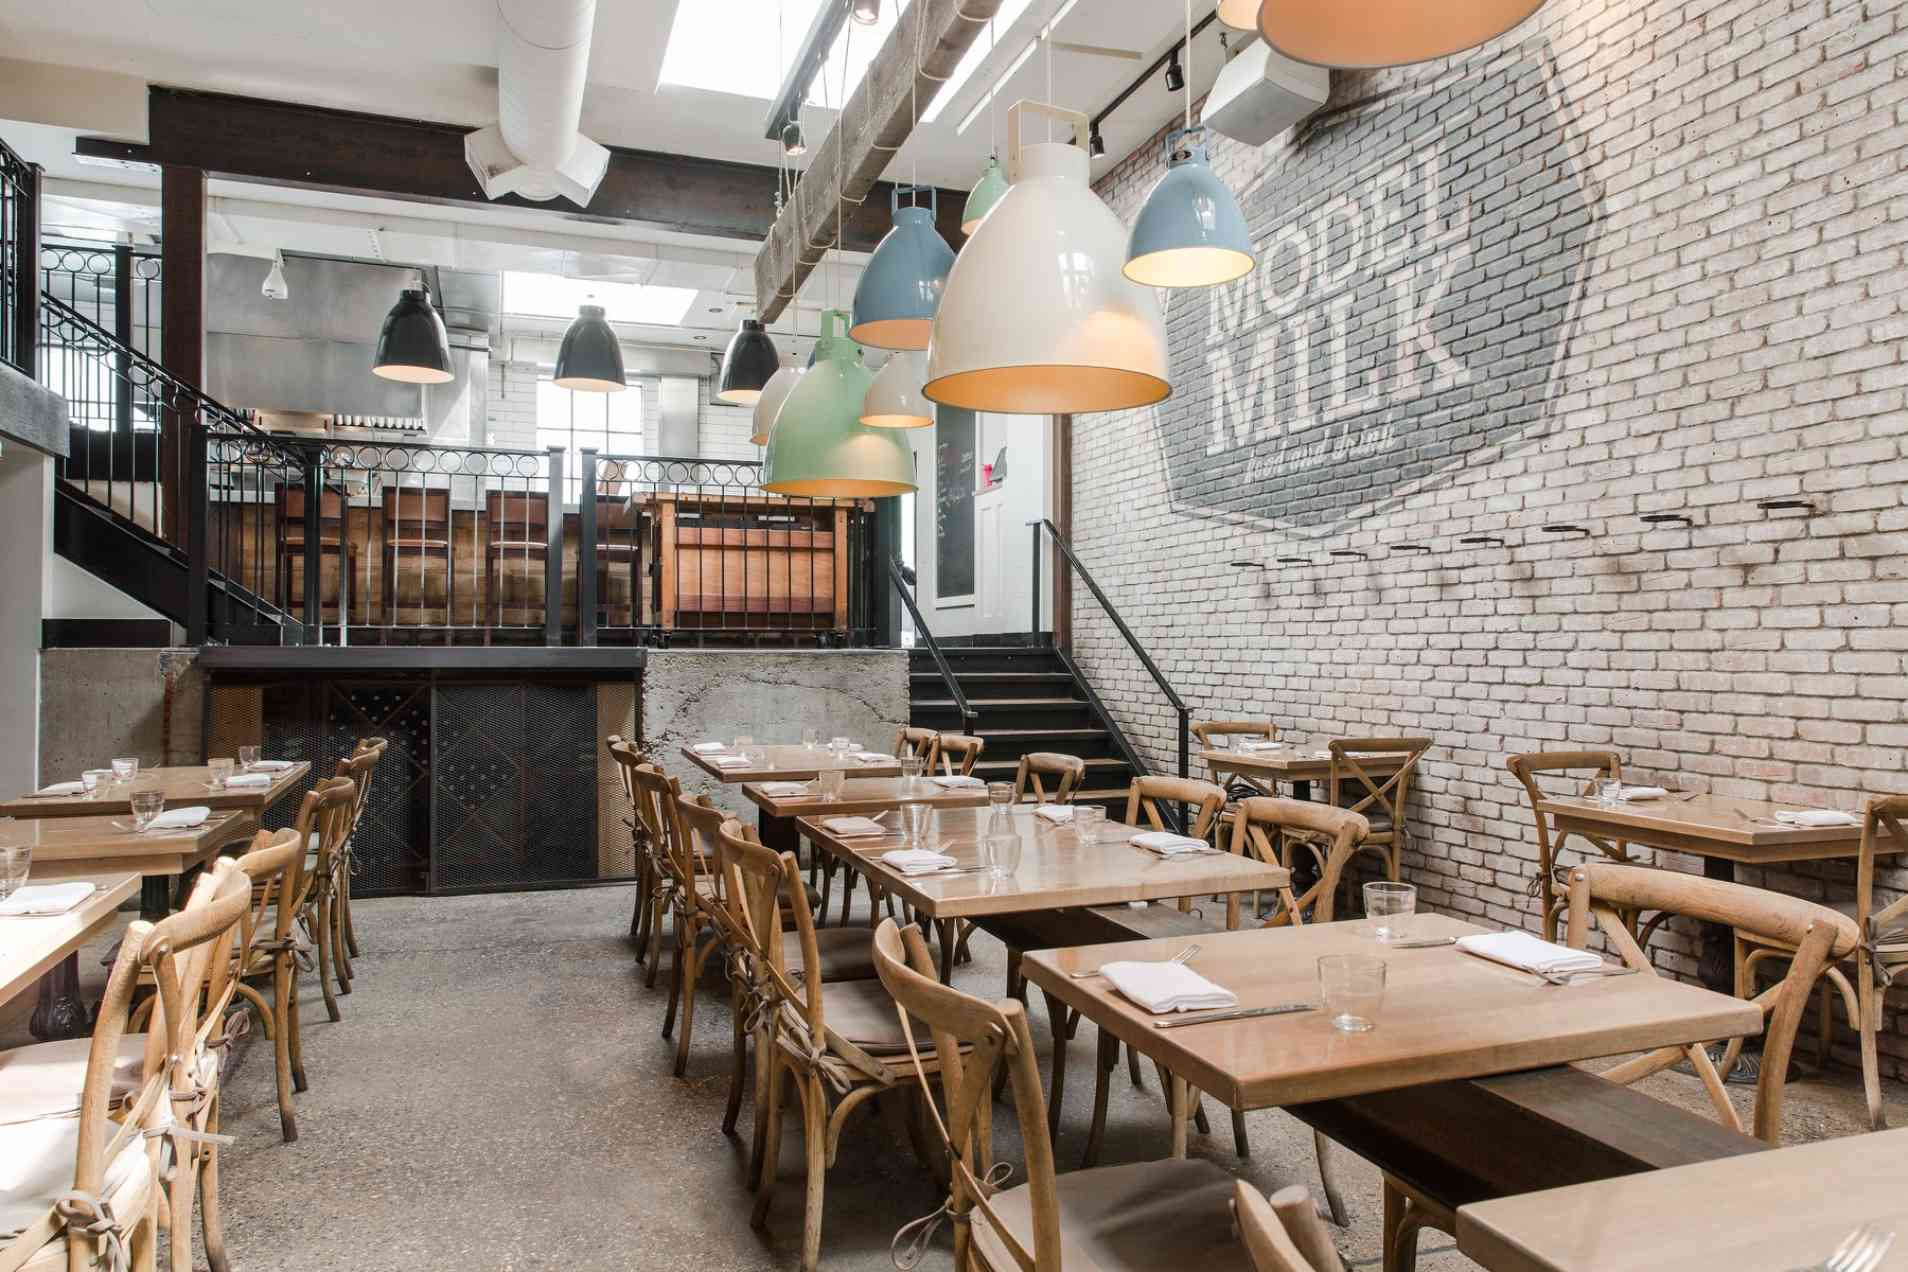 restuarant dining room with off-white brick walls, light wooden tables and pastel painted light fixtures